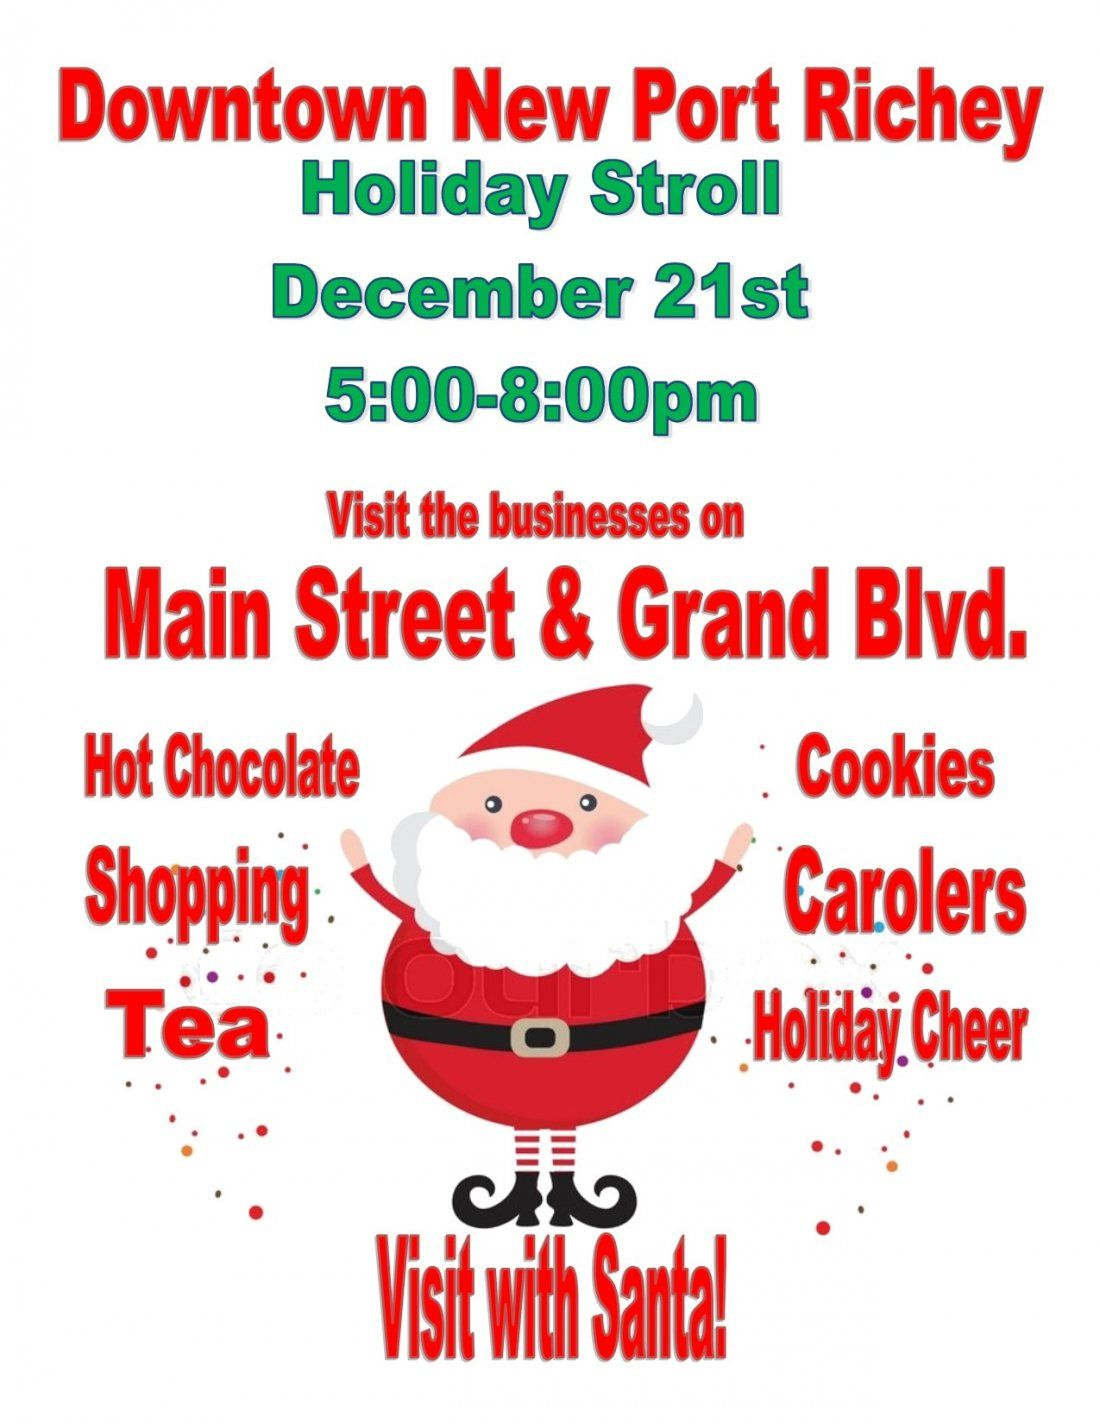 Downtown New Port Richey Holiday Stroll